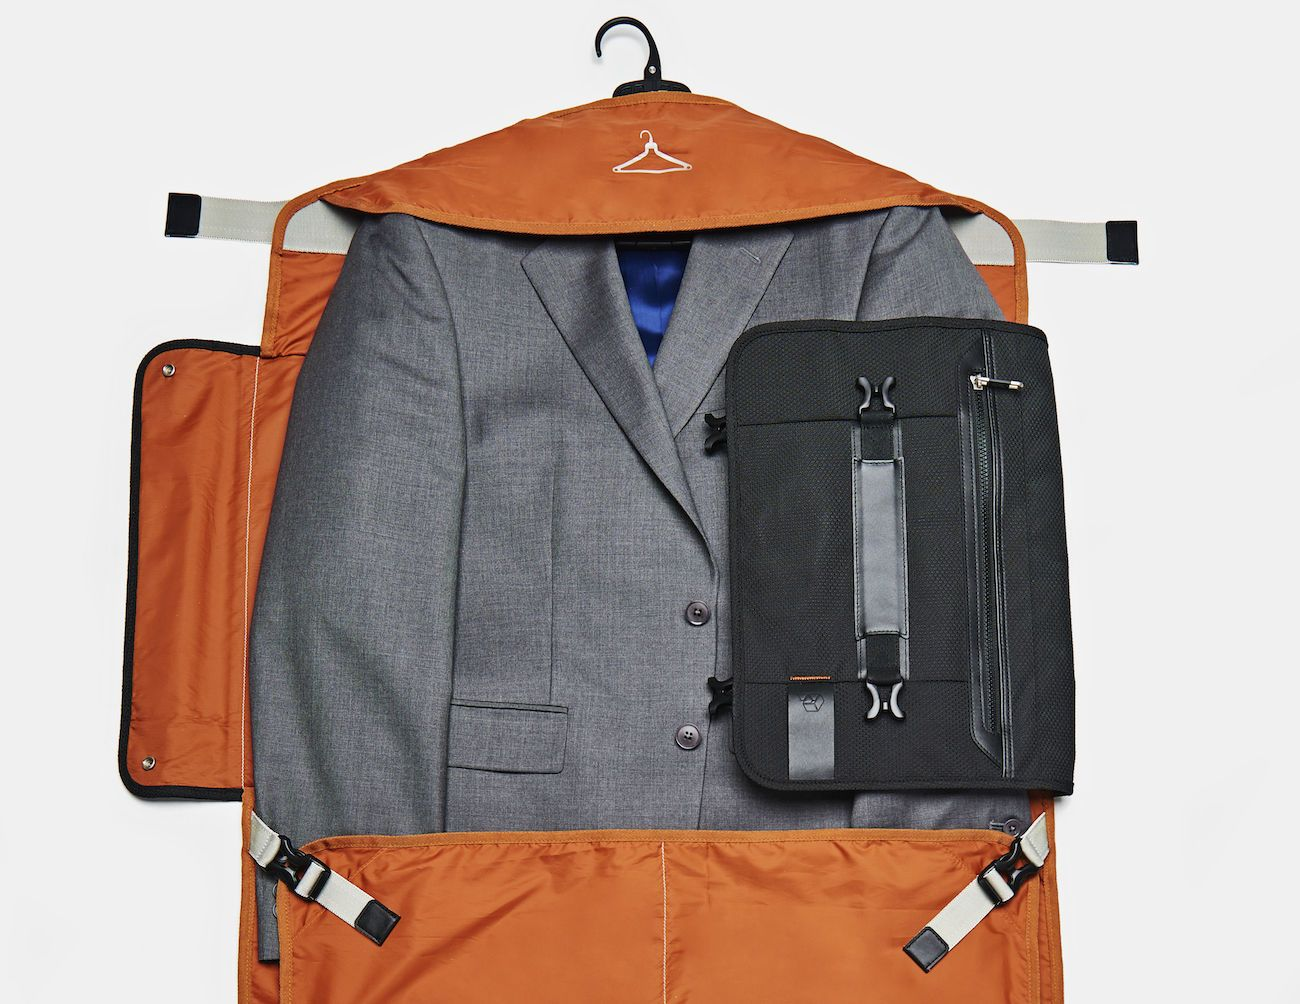 PLIQO Folding Garment Bag